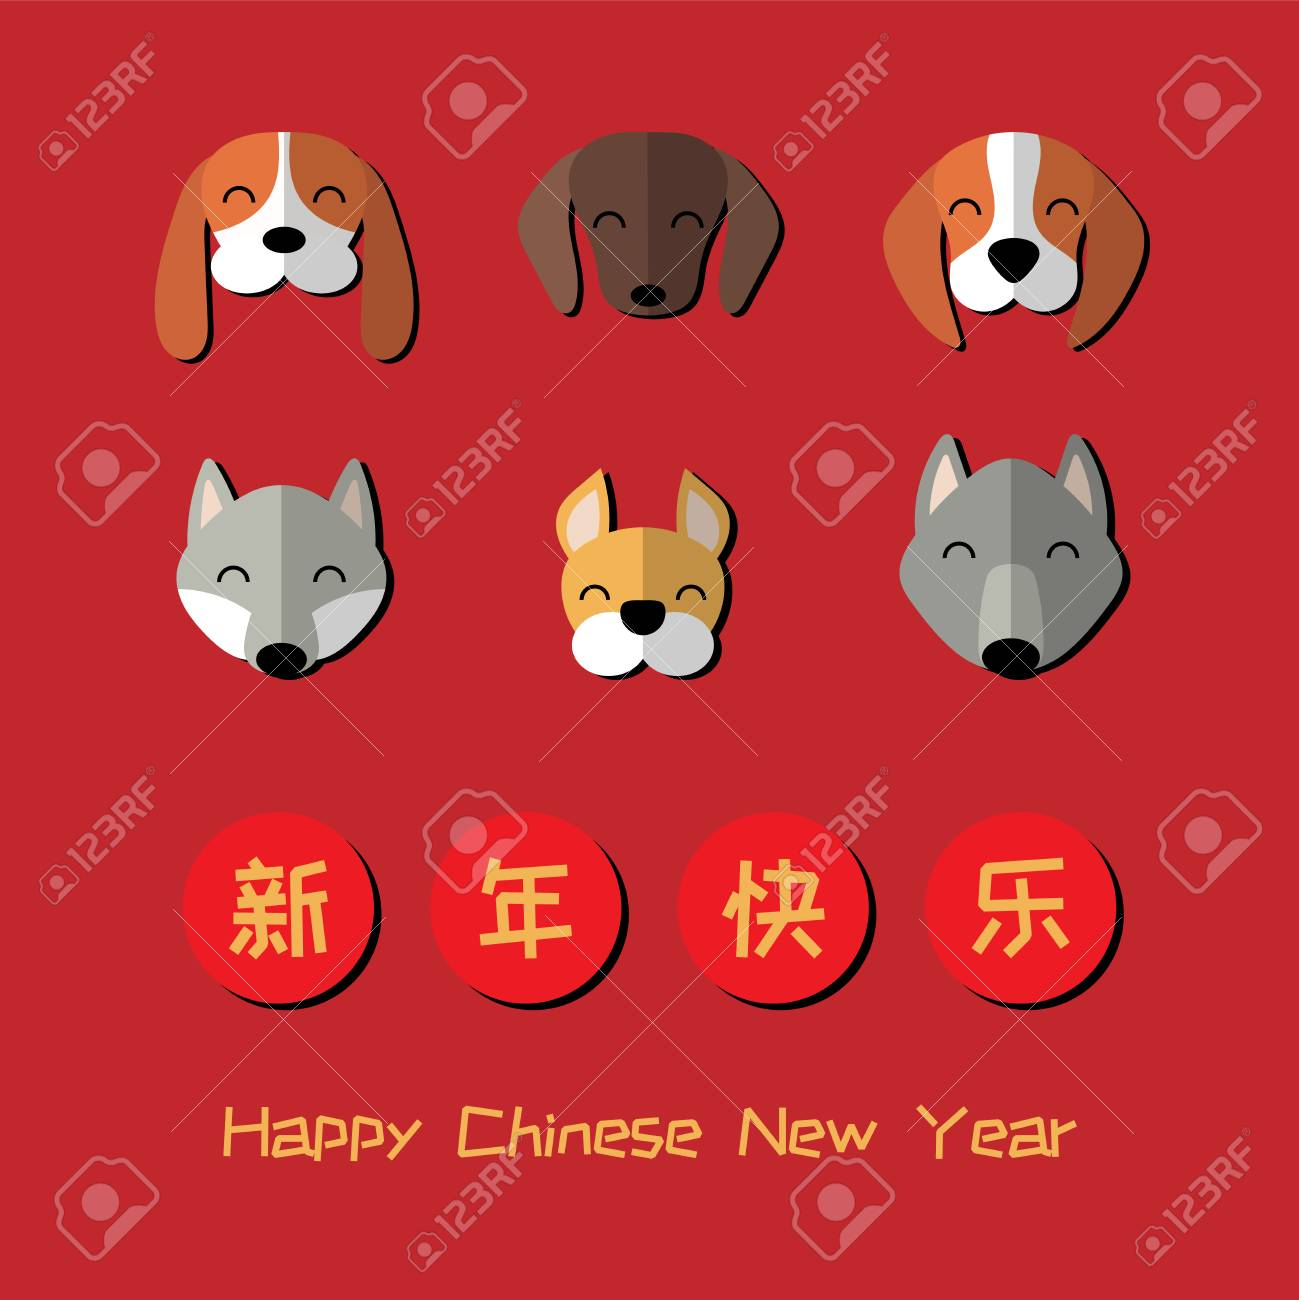 2018 Chinese New Year Greeting Card Banner With Cute Funny Cartoon